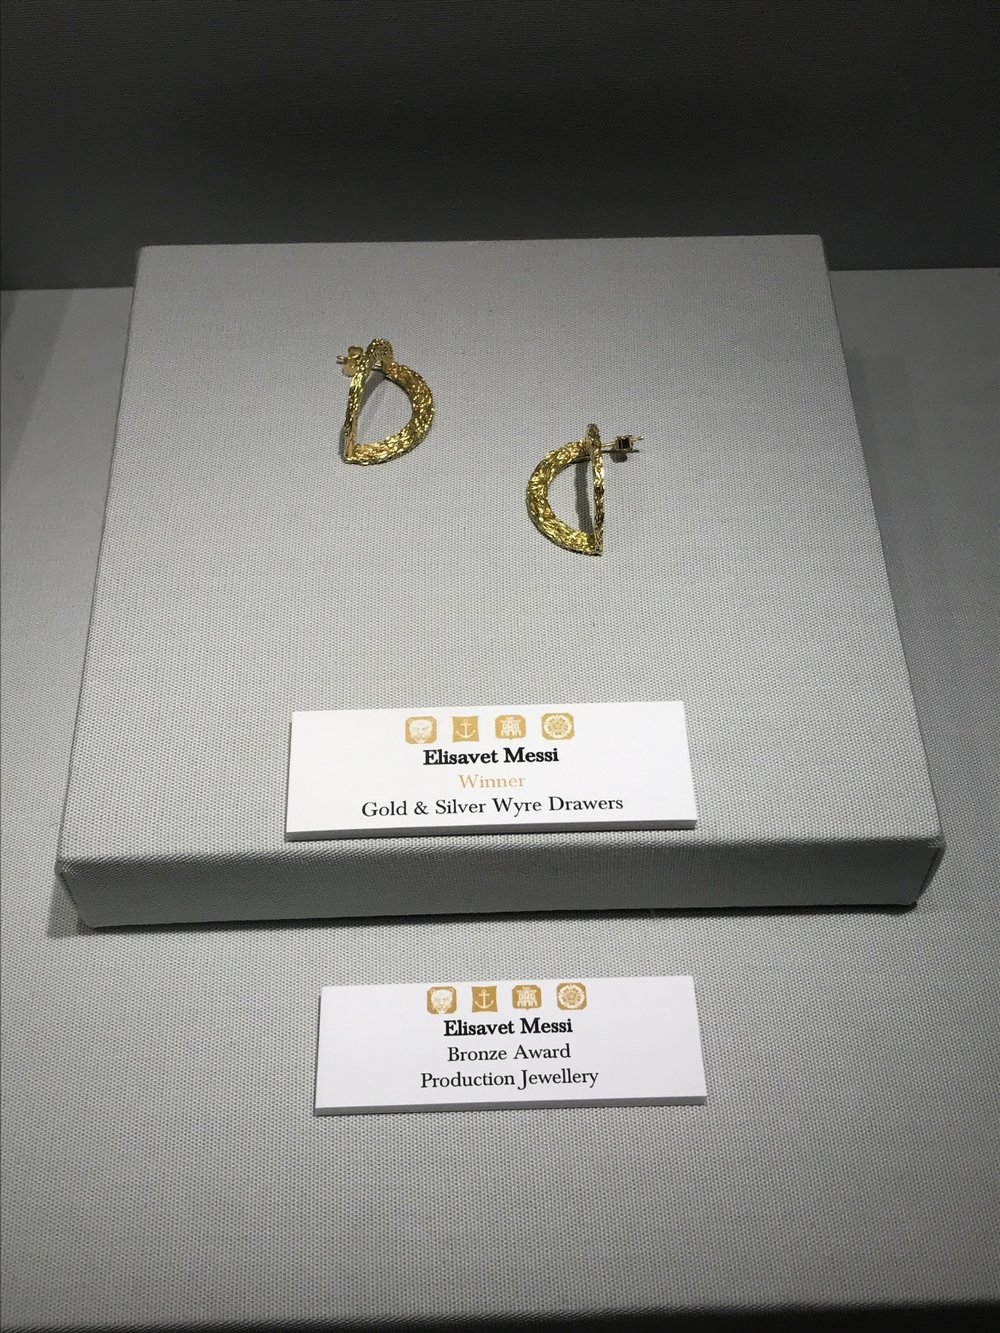 Elisavet Messi Award Earrings